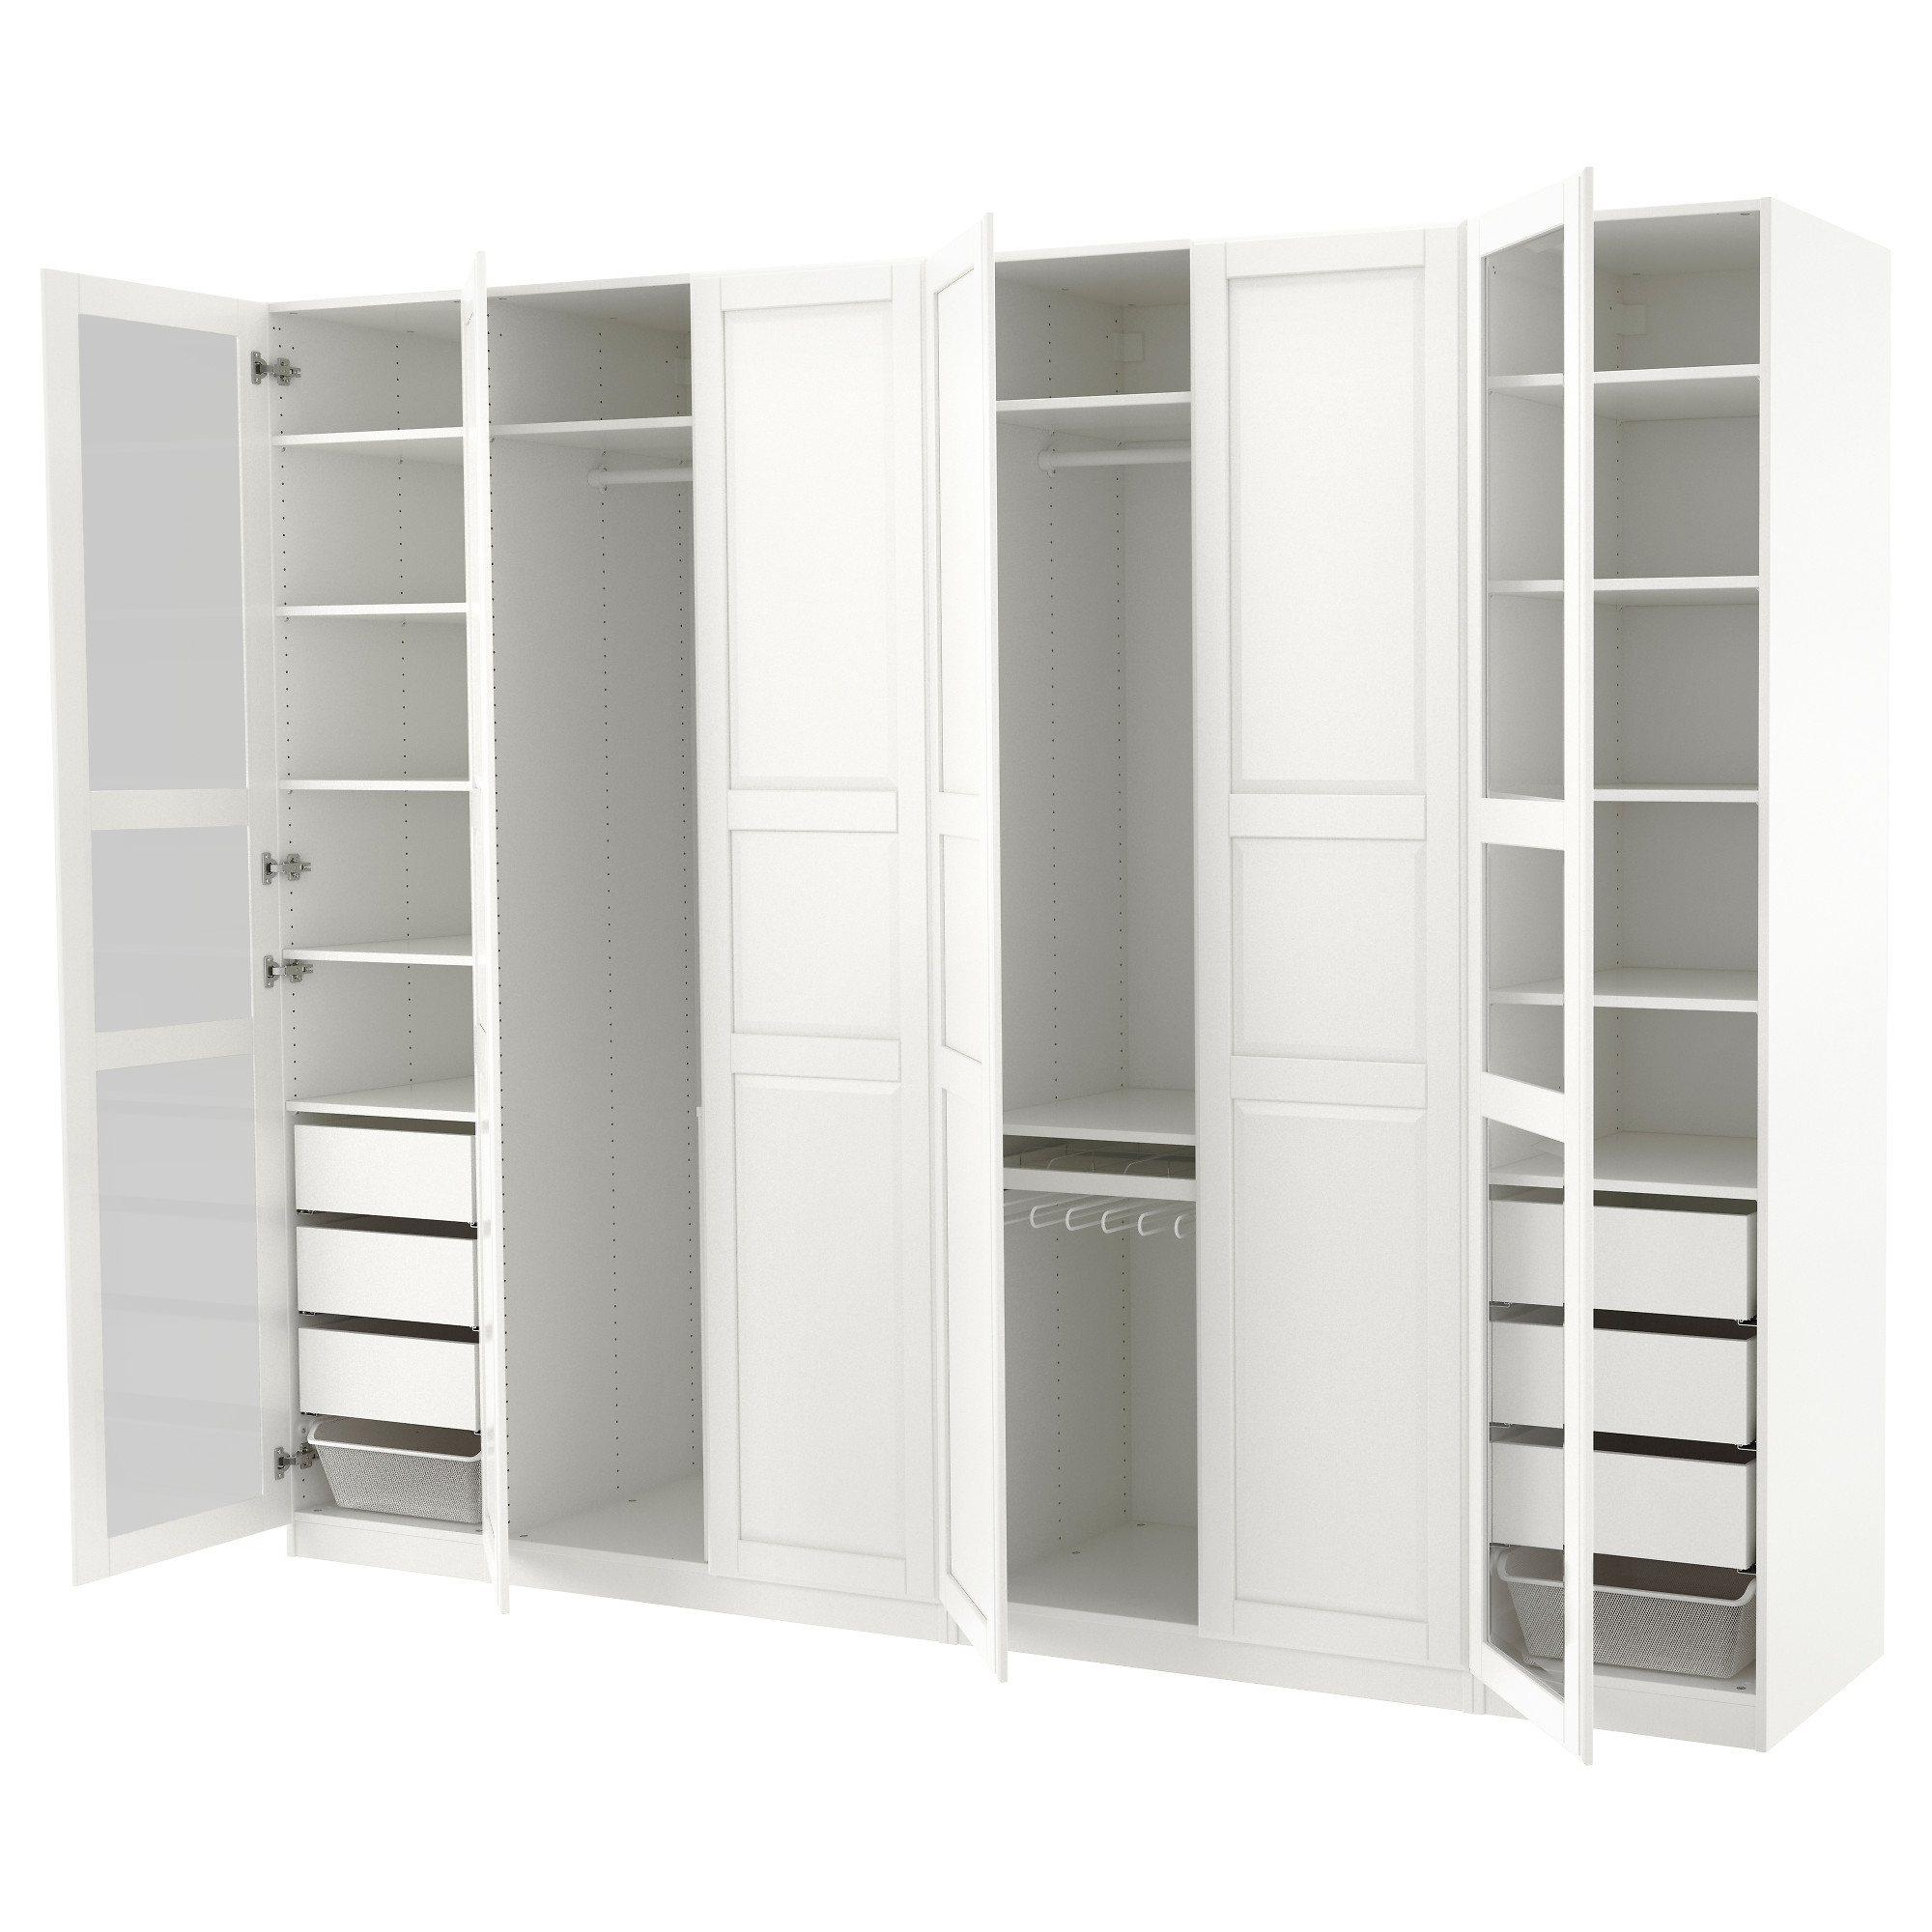 furniture wardrobe interesting photo closets gallery armoires attachment viewing wardrobes bedroom as ikea closet of armoire well